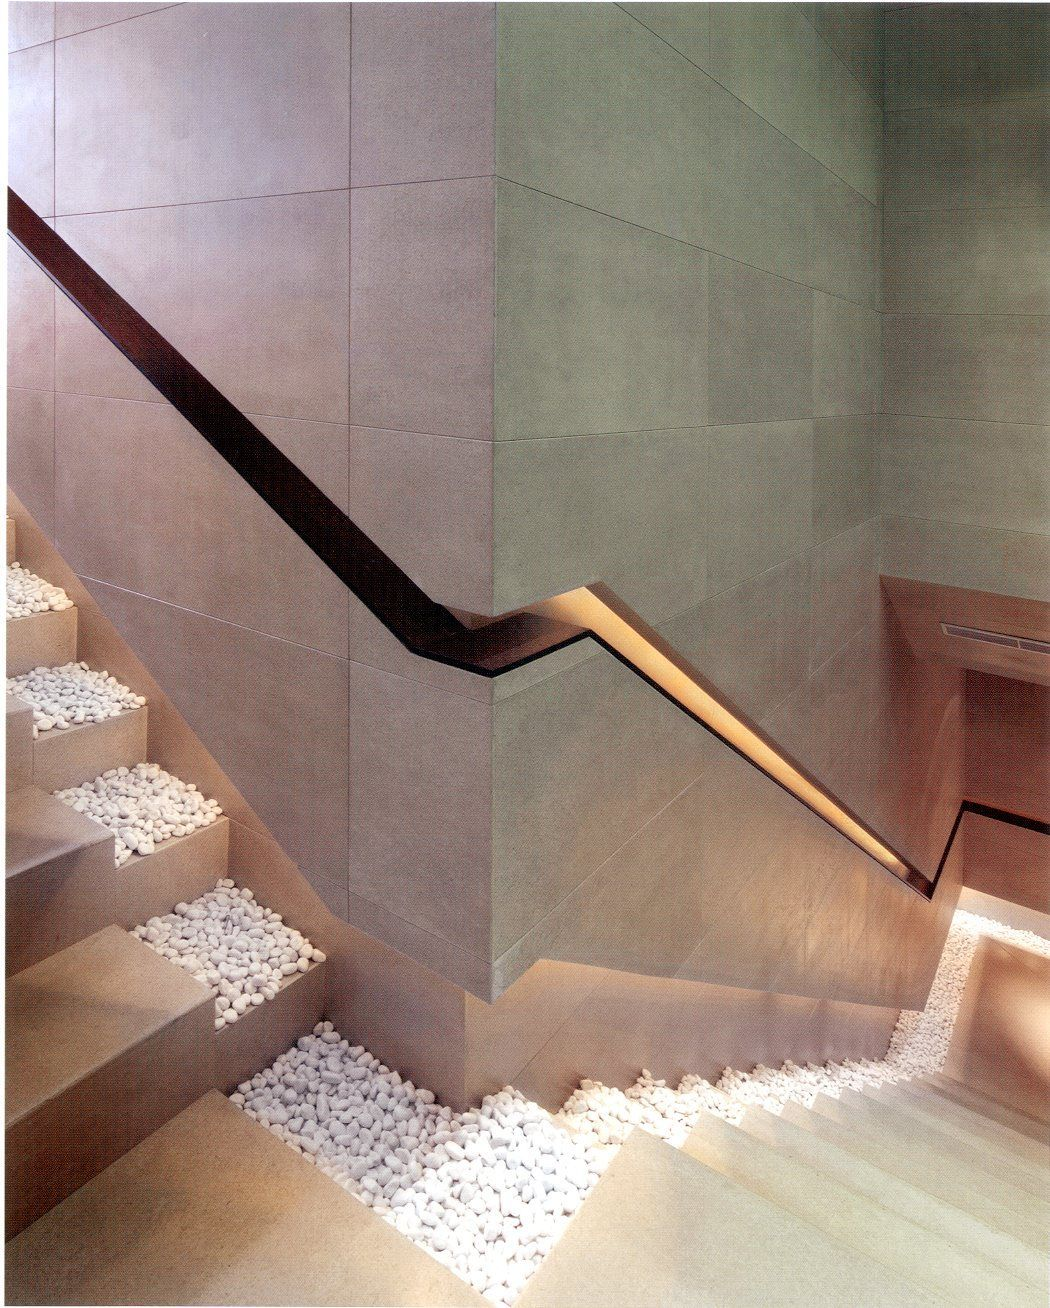 Home Decoration Design Minimalist Interior Design Staircase: Staircase With A Path Of White Rocks And A Handrail Inside